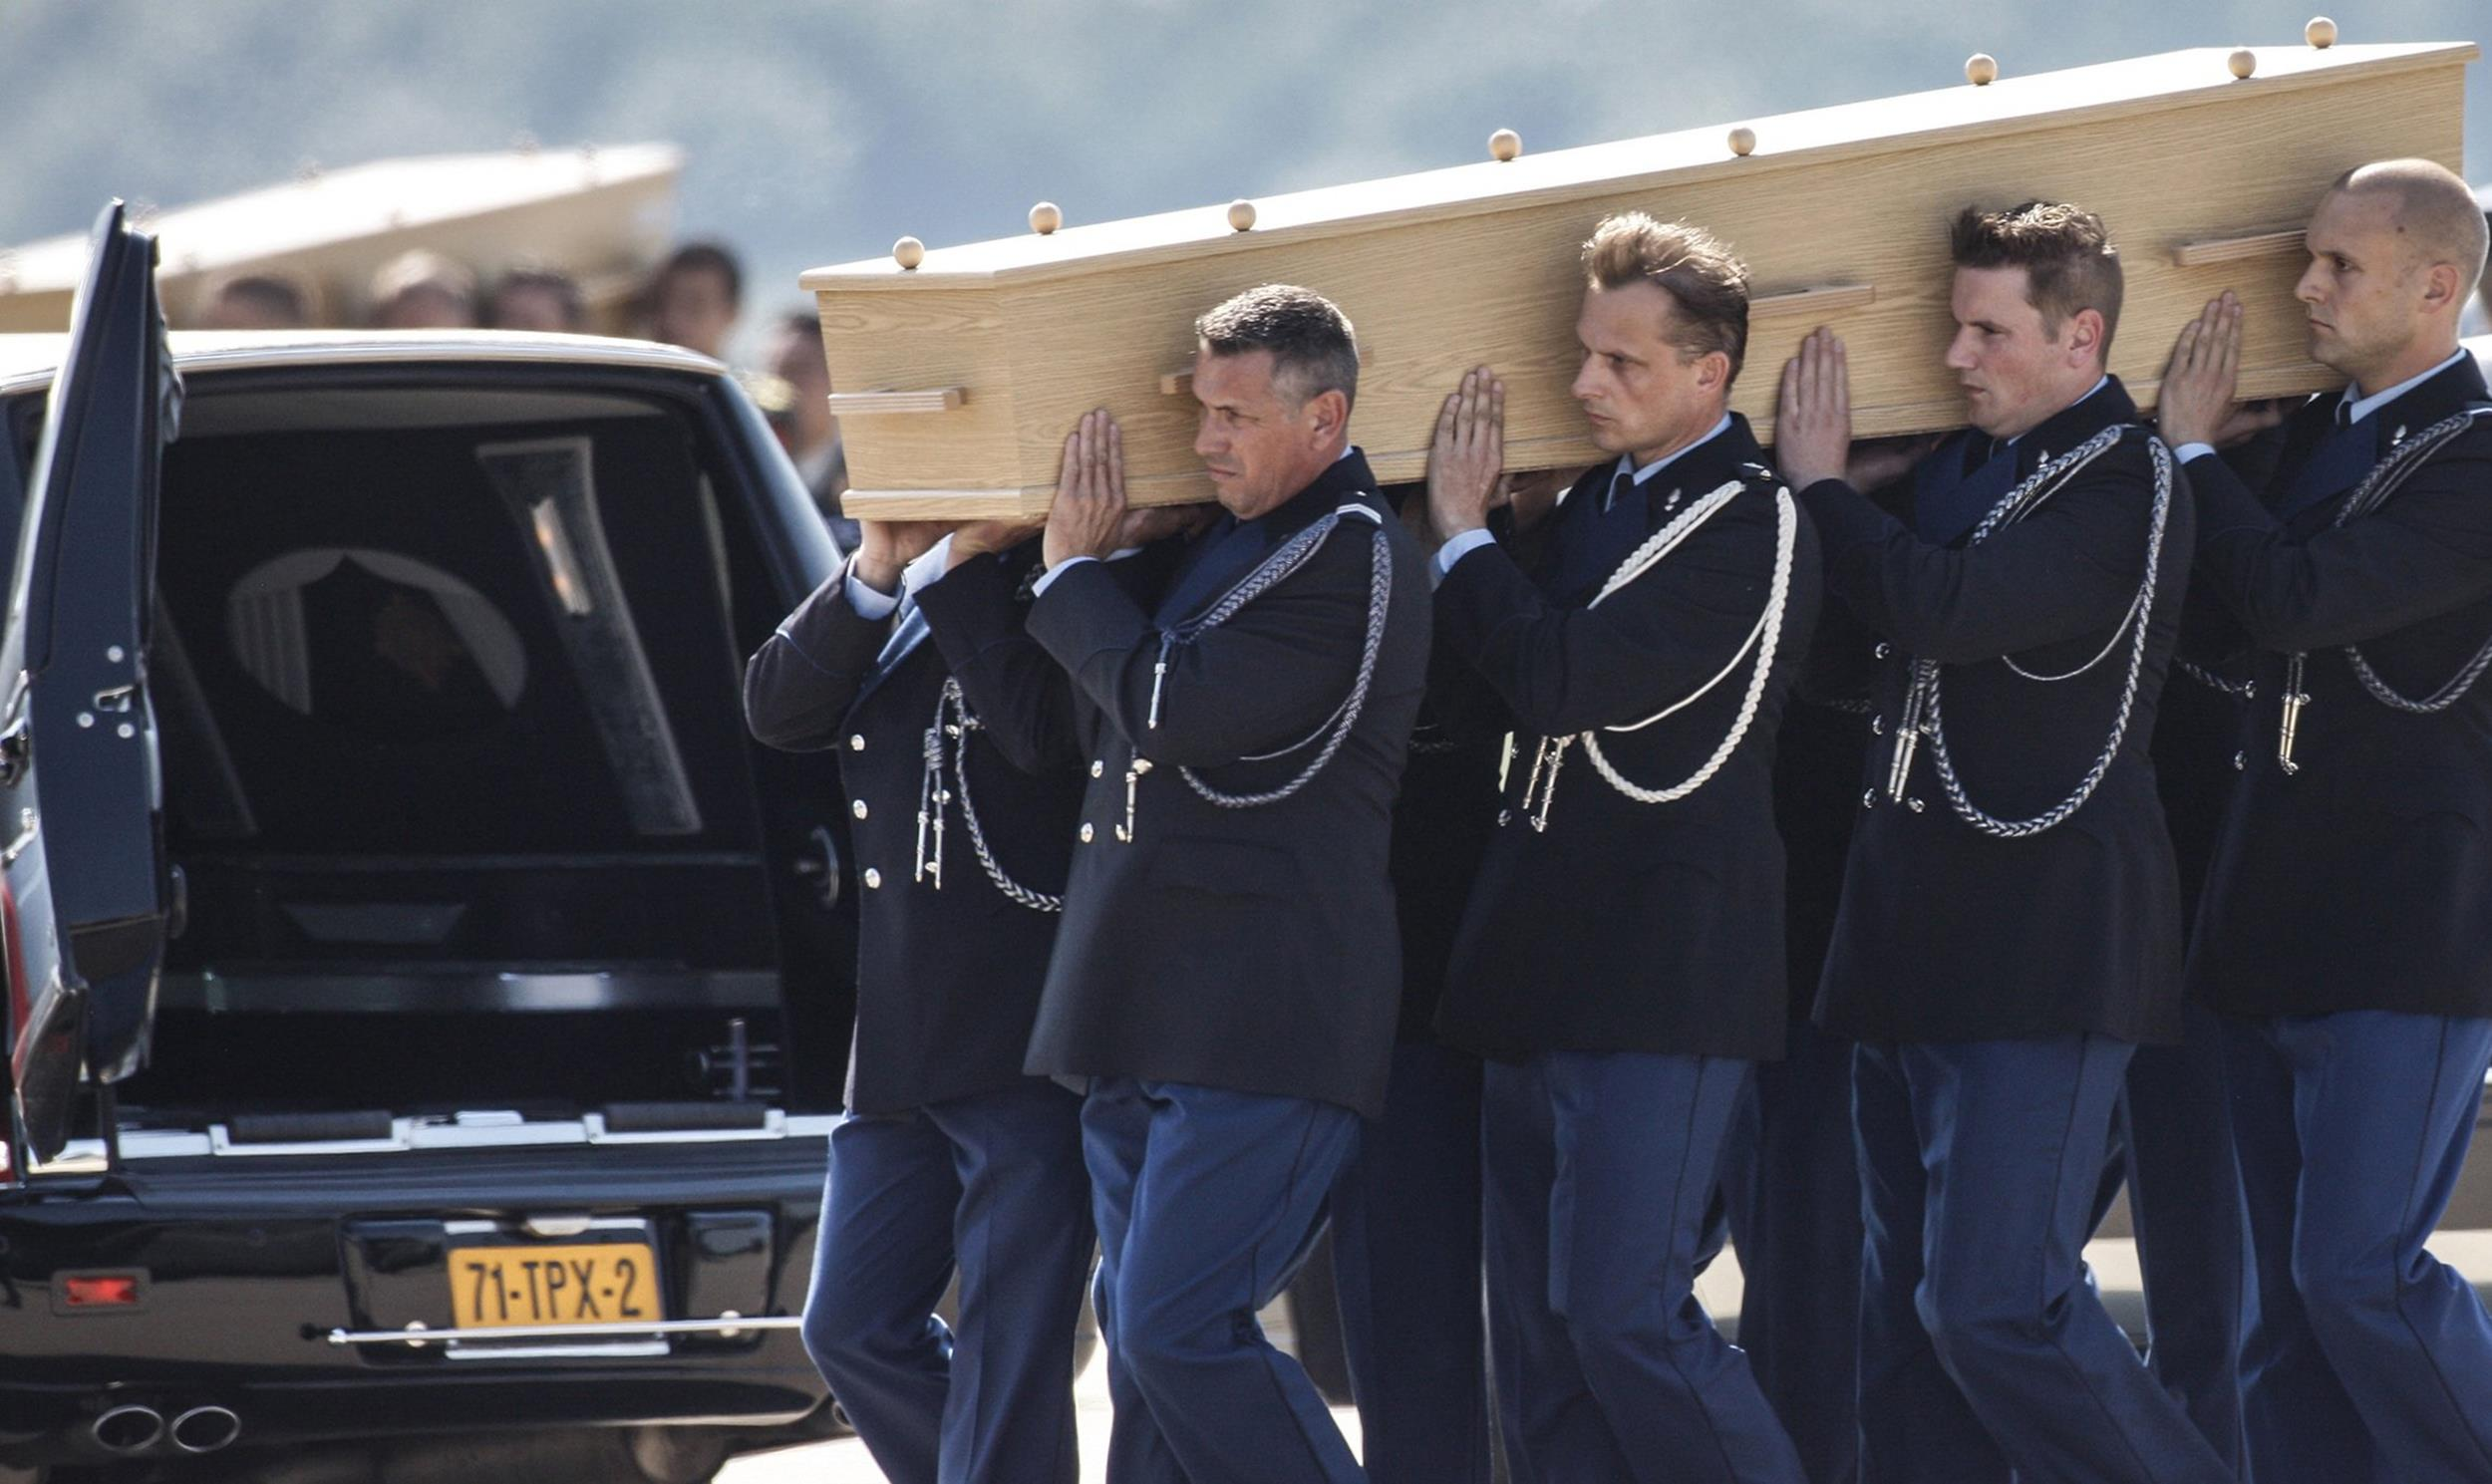 Image: Coffins of the victims of Malaysia Airlines MH17 downed over rebel-held territory in eastern Ukraine, are loaded into hearses on the tarmac during a national reception ceremony at Eindhoven airport